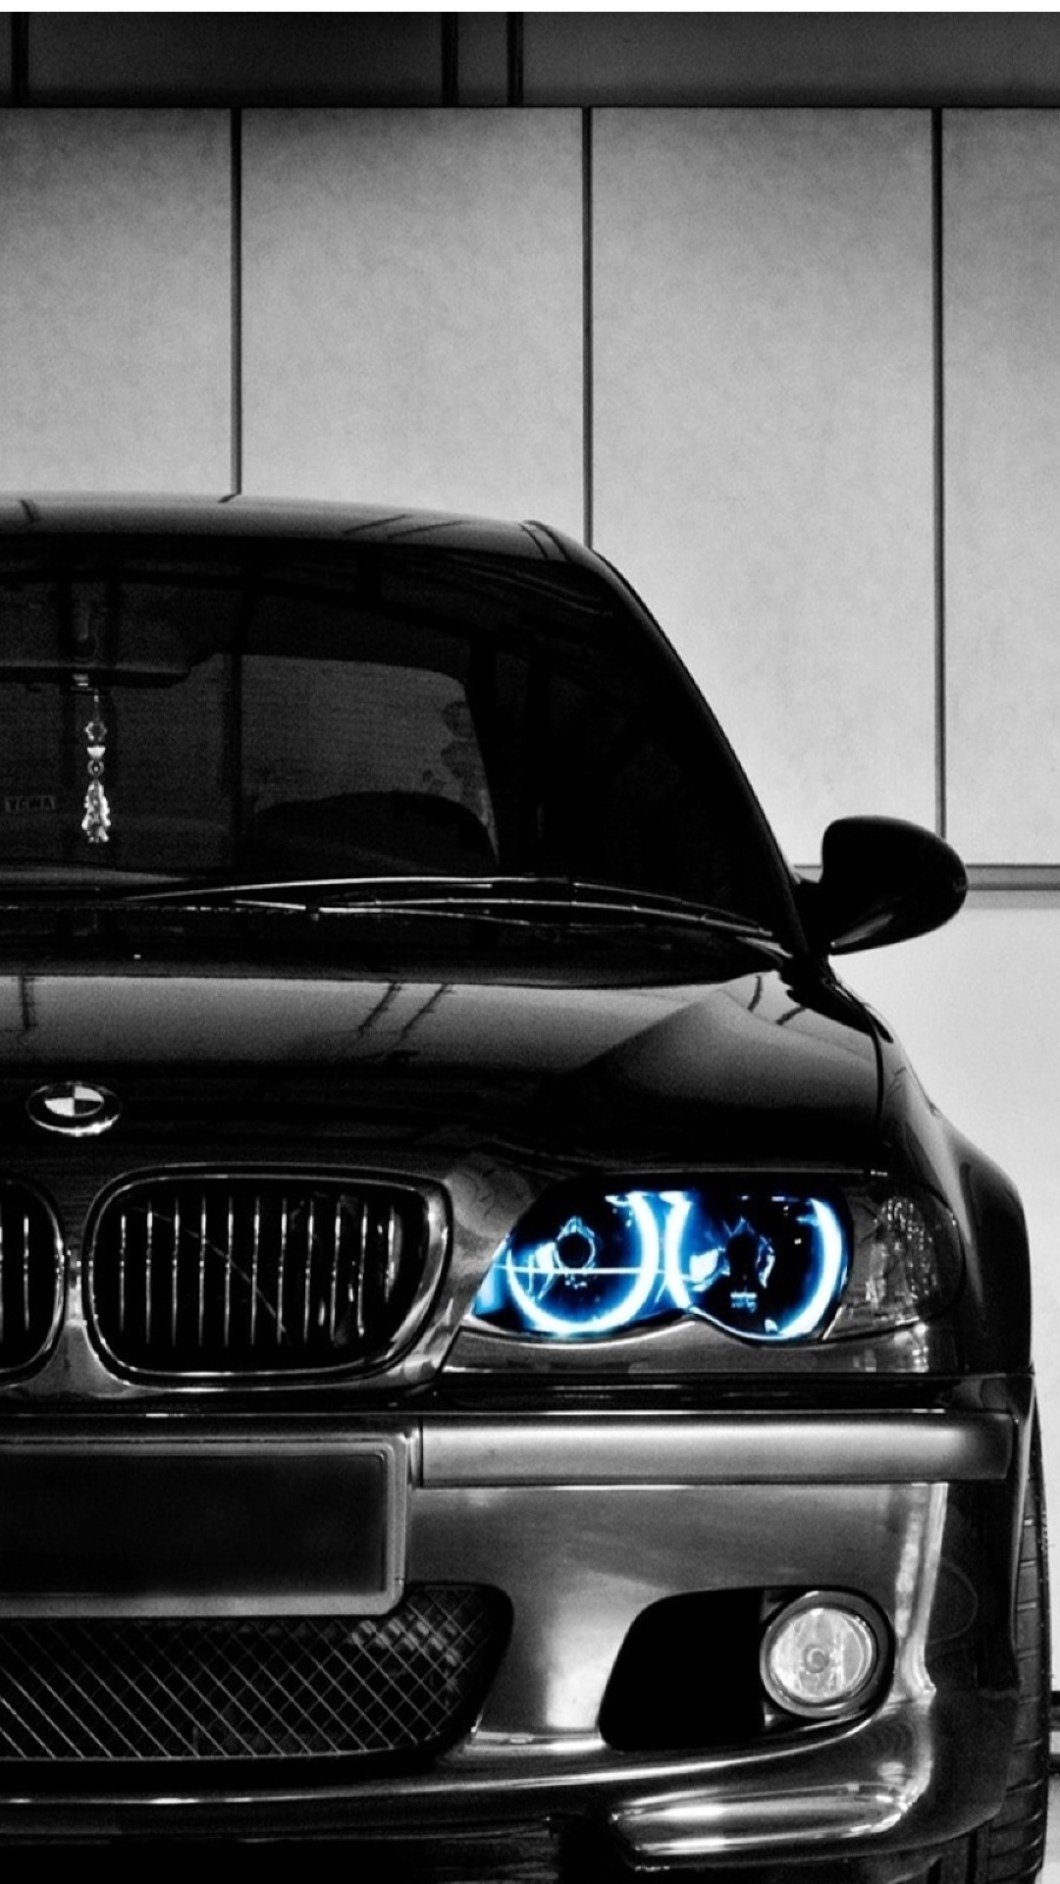 Hd Bmw Wallpapers For Iphone Bestpicture1 Org